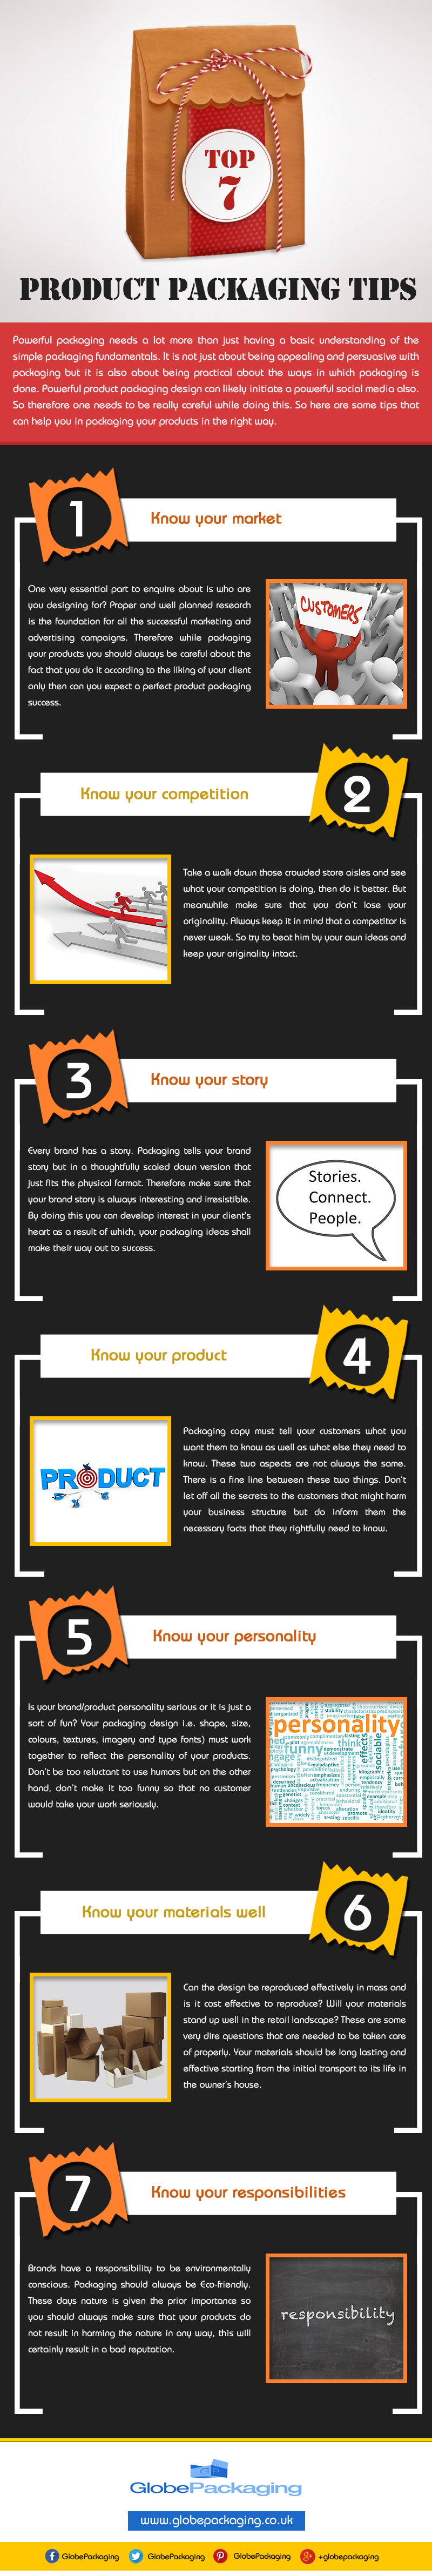 Product Packaging Tips [Infographic]